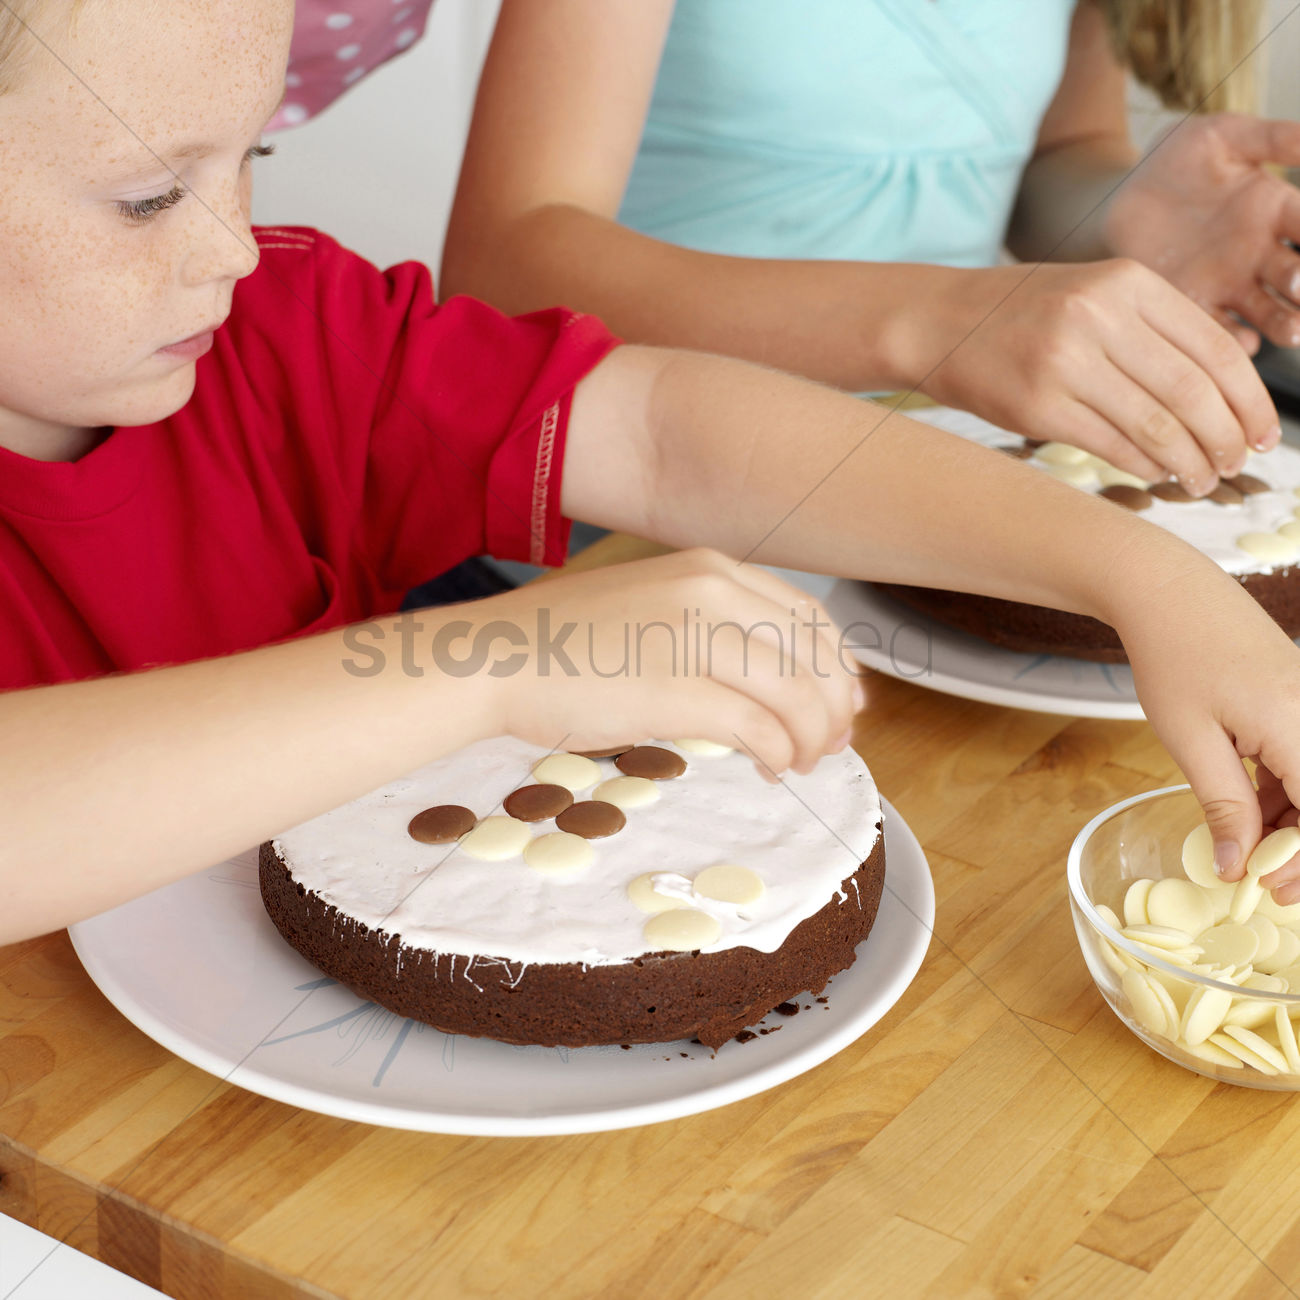 Cake Decorating With Chocolate Candy : Boy and girl decorating cakes with chocolate candies Stock ...